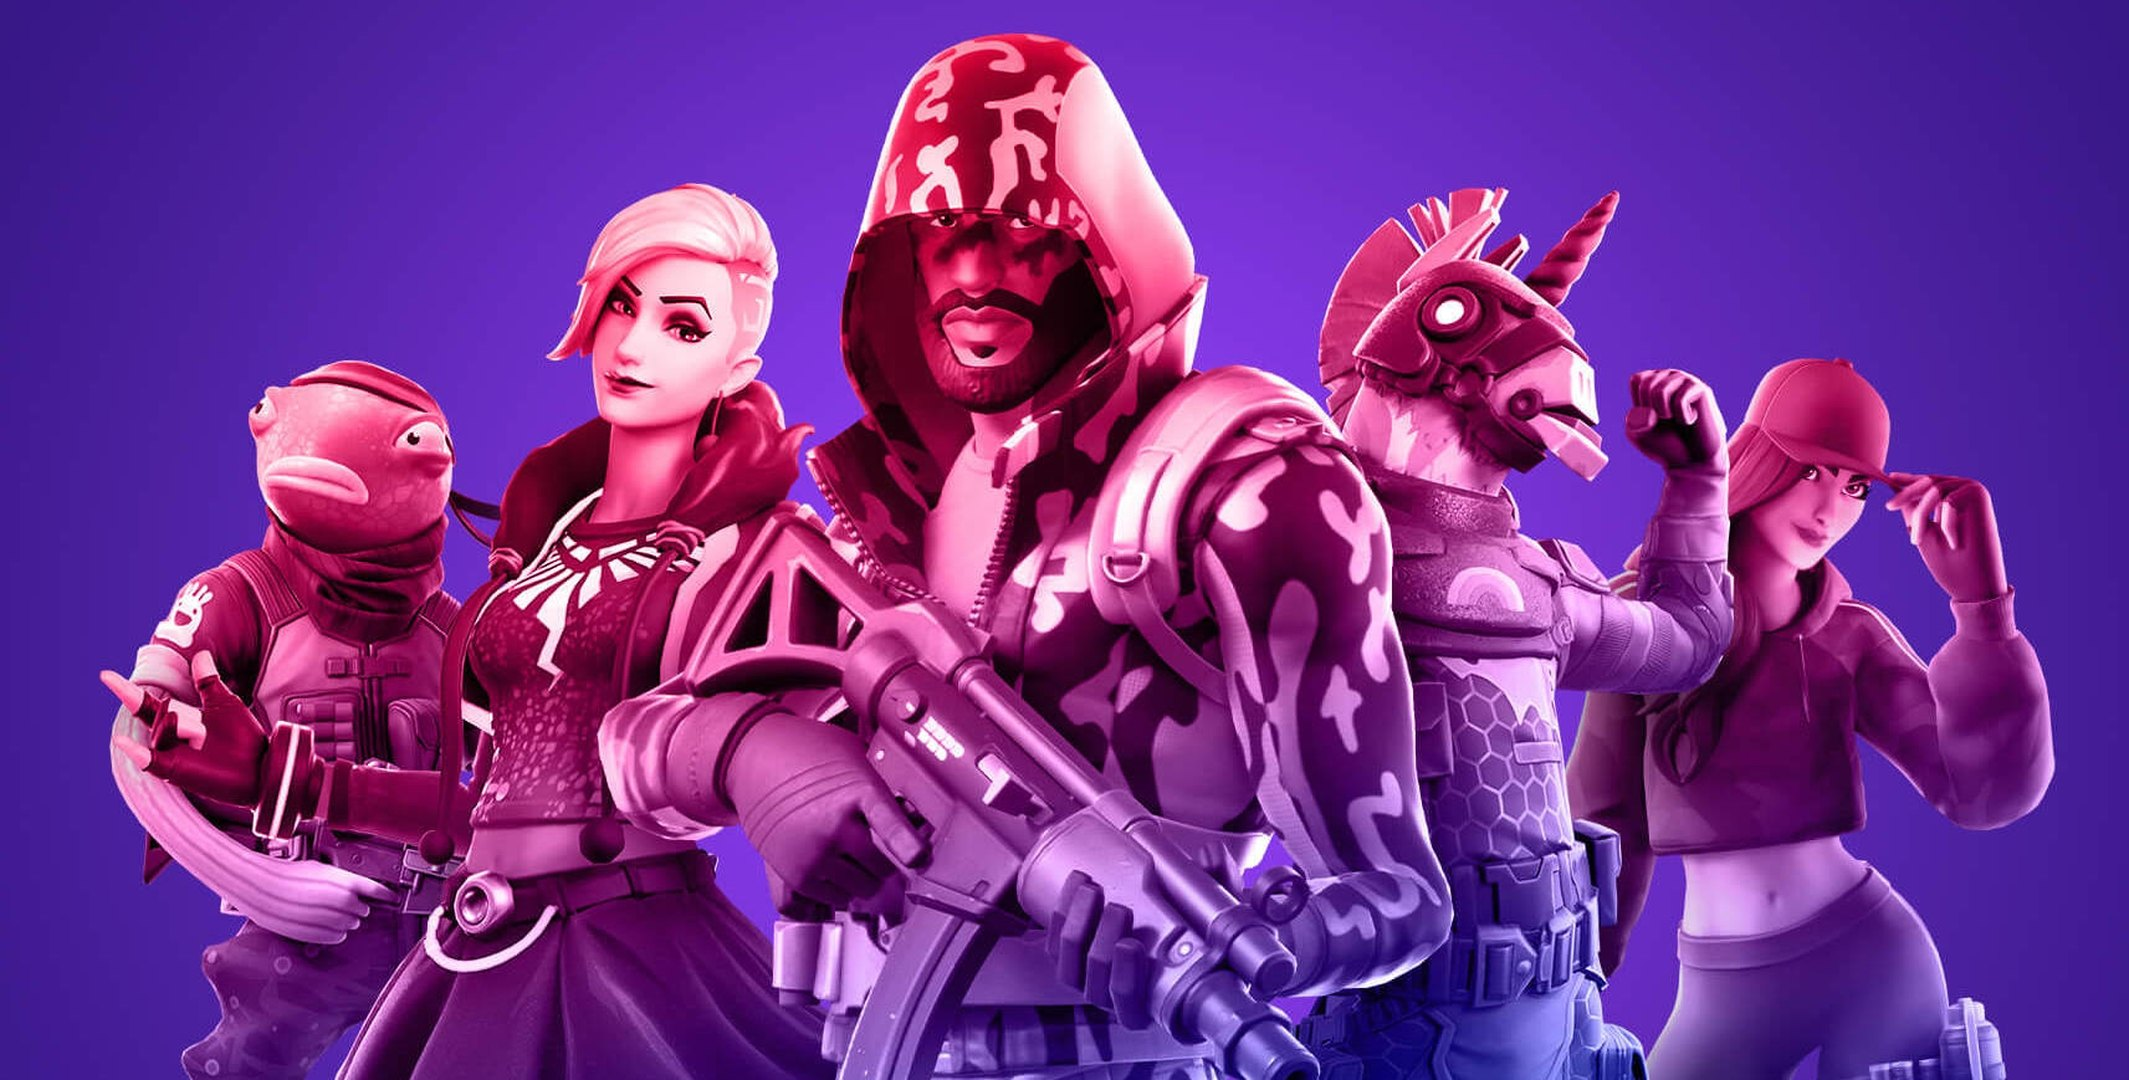 Cross Platform Game To Replace Fortnite Can You Still Play Fortnite On Mobile Steelseries